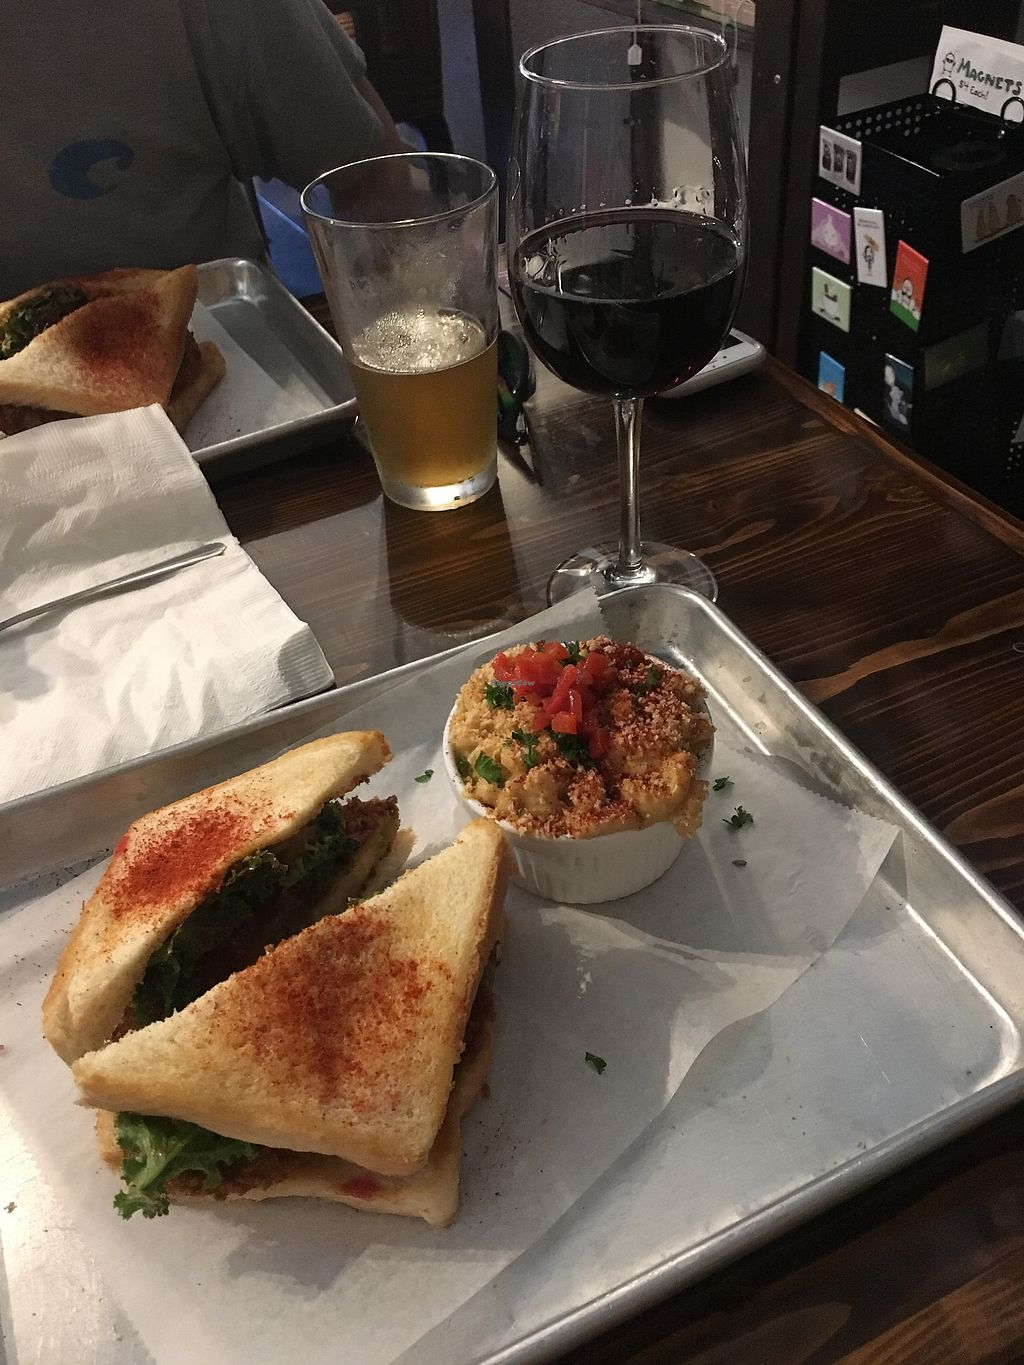 """Photo of Dixie Dharma - Market on South  by <a href=""""/members/profile/kaelashai"""">kaelashai</a> <br/>Florida Fried Green Tomato & Mac n' Cheese <br/> October 14, 2017  - <a href='/contact/abuse/image/52602/314936'>Report</a>"""